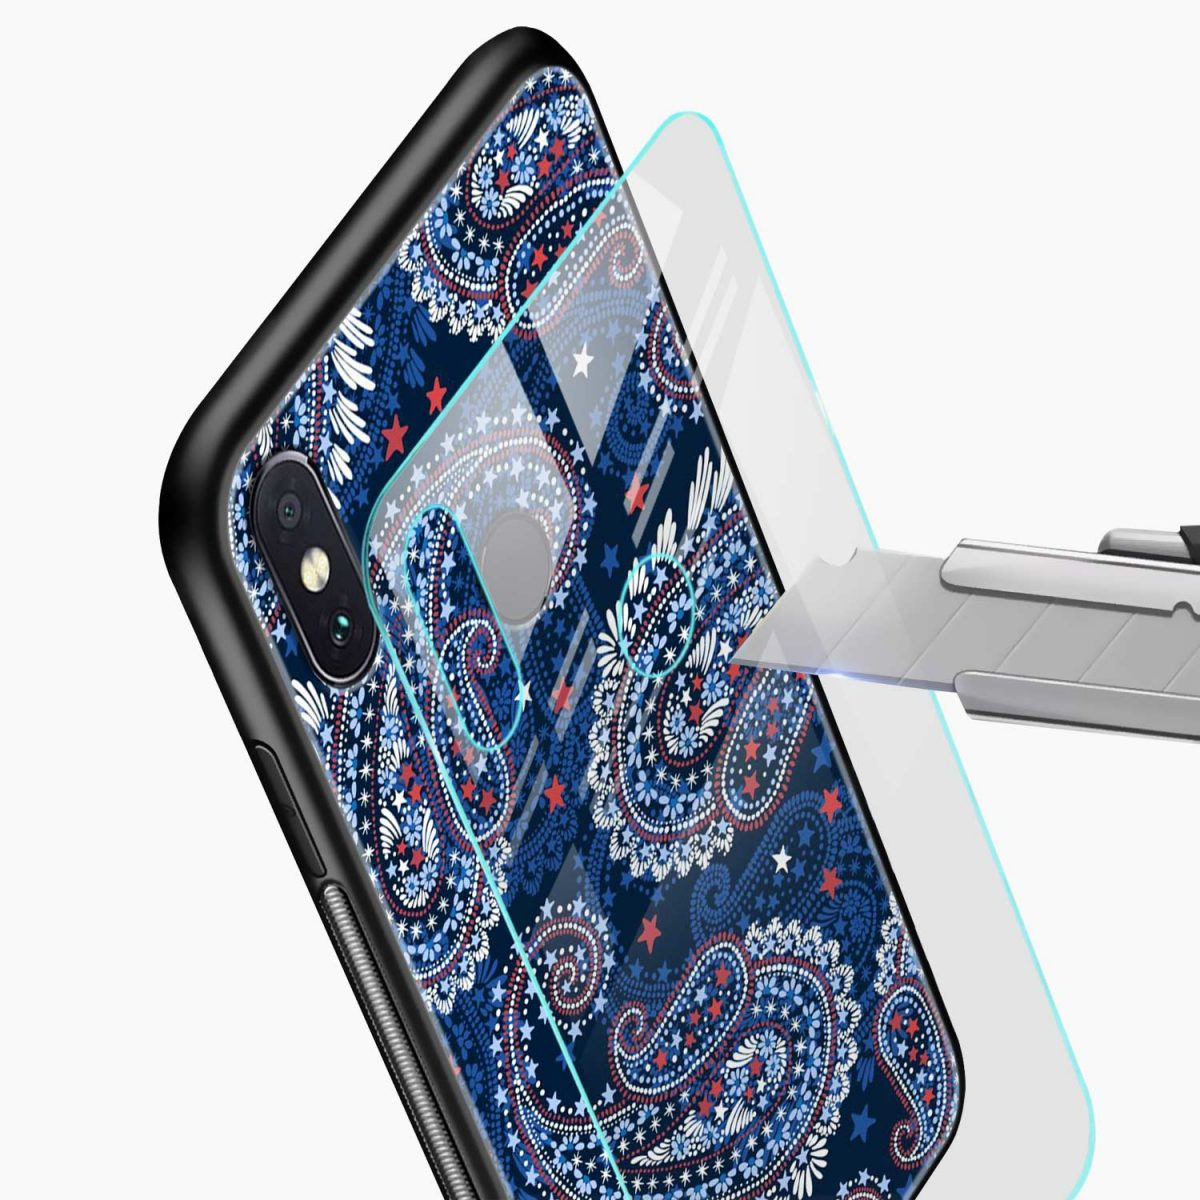 blue colored classical pattern redmi note 5 pro back cover glass view